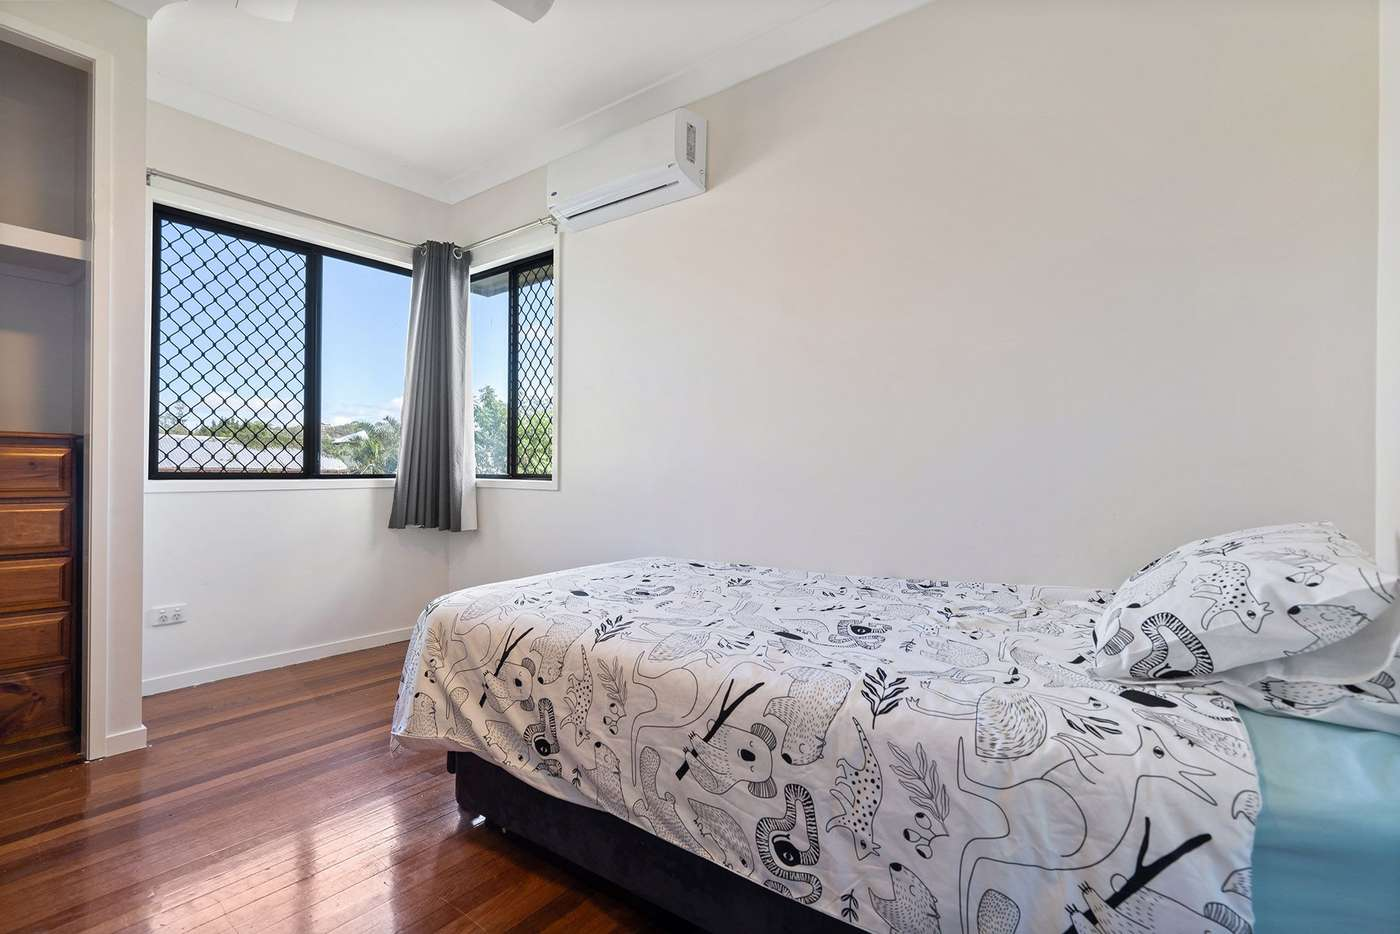 Sixth view of Homely house listing, 15 Camlet Street, Mount Gravatt East QLD 4122